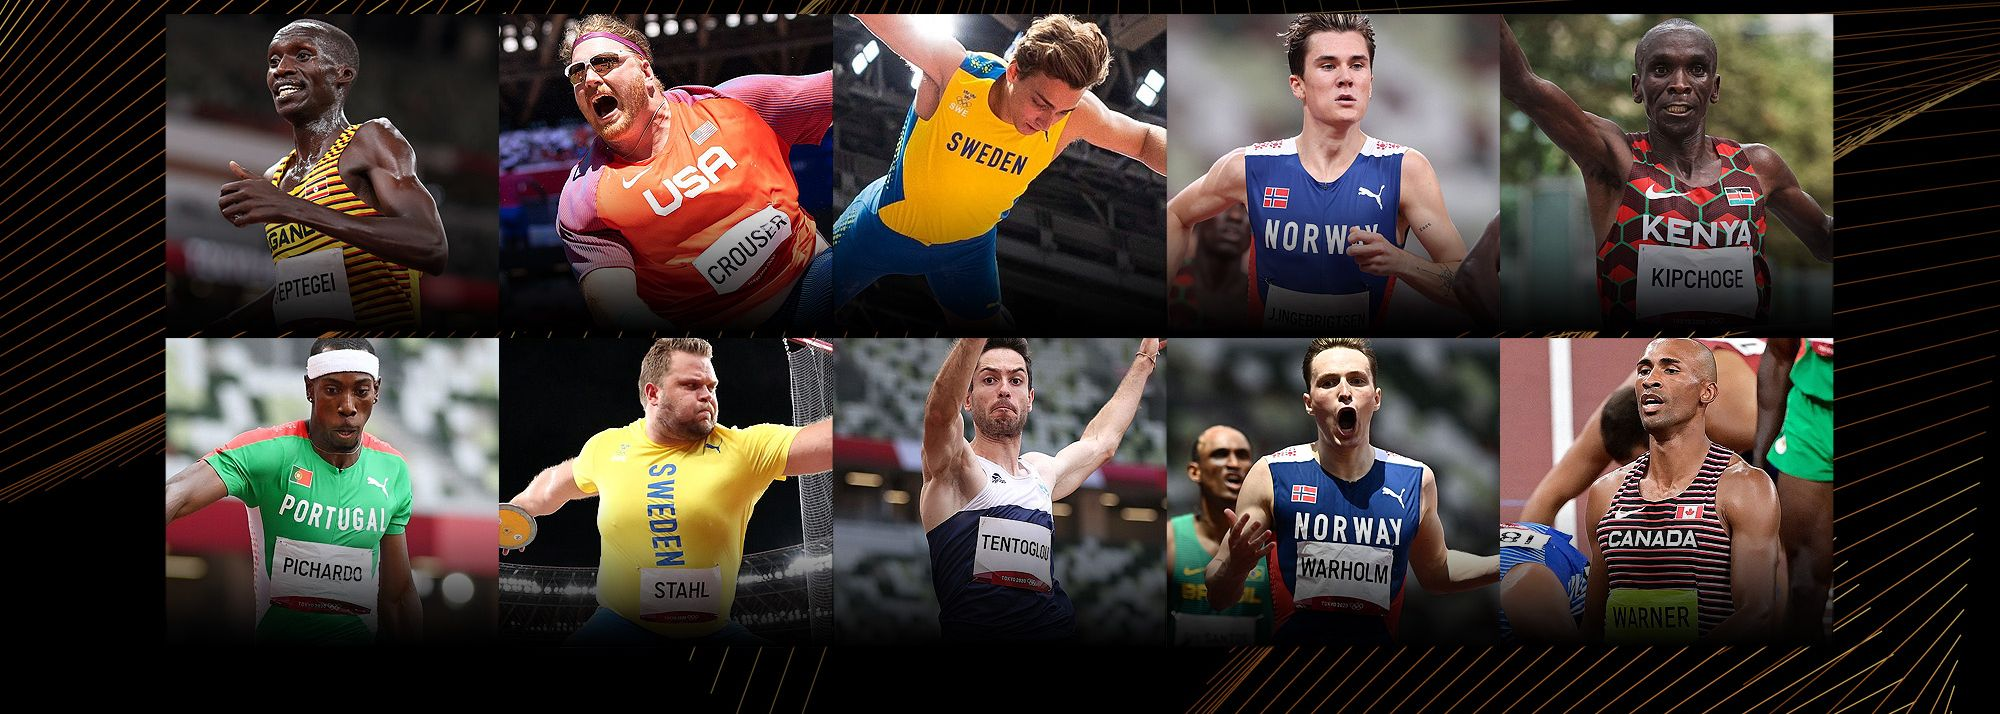 A closer look at the nominated athletes